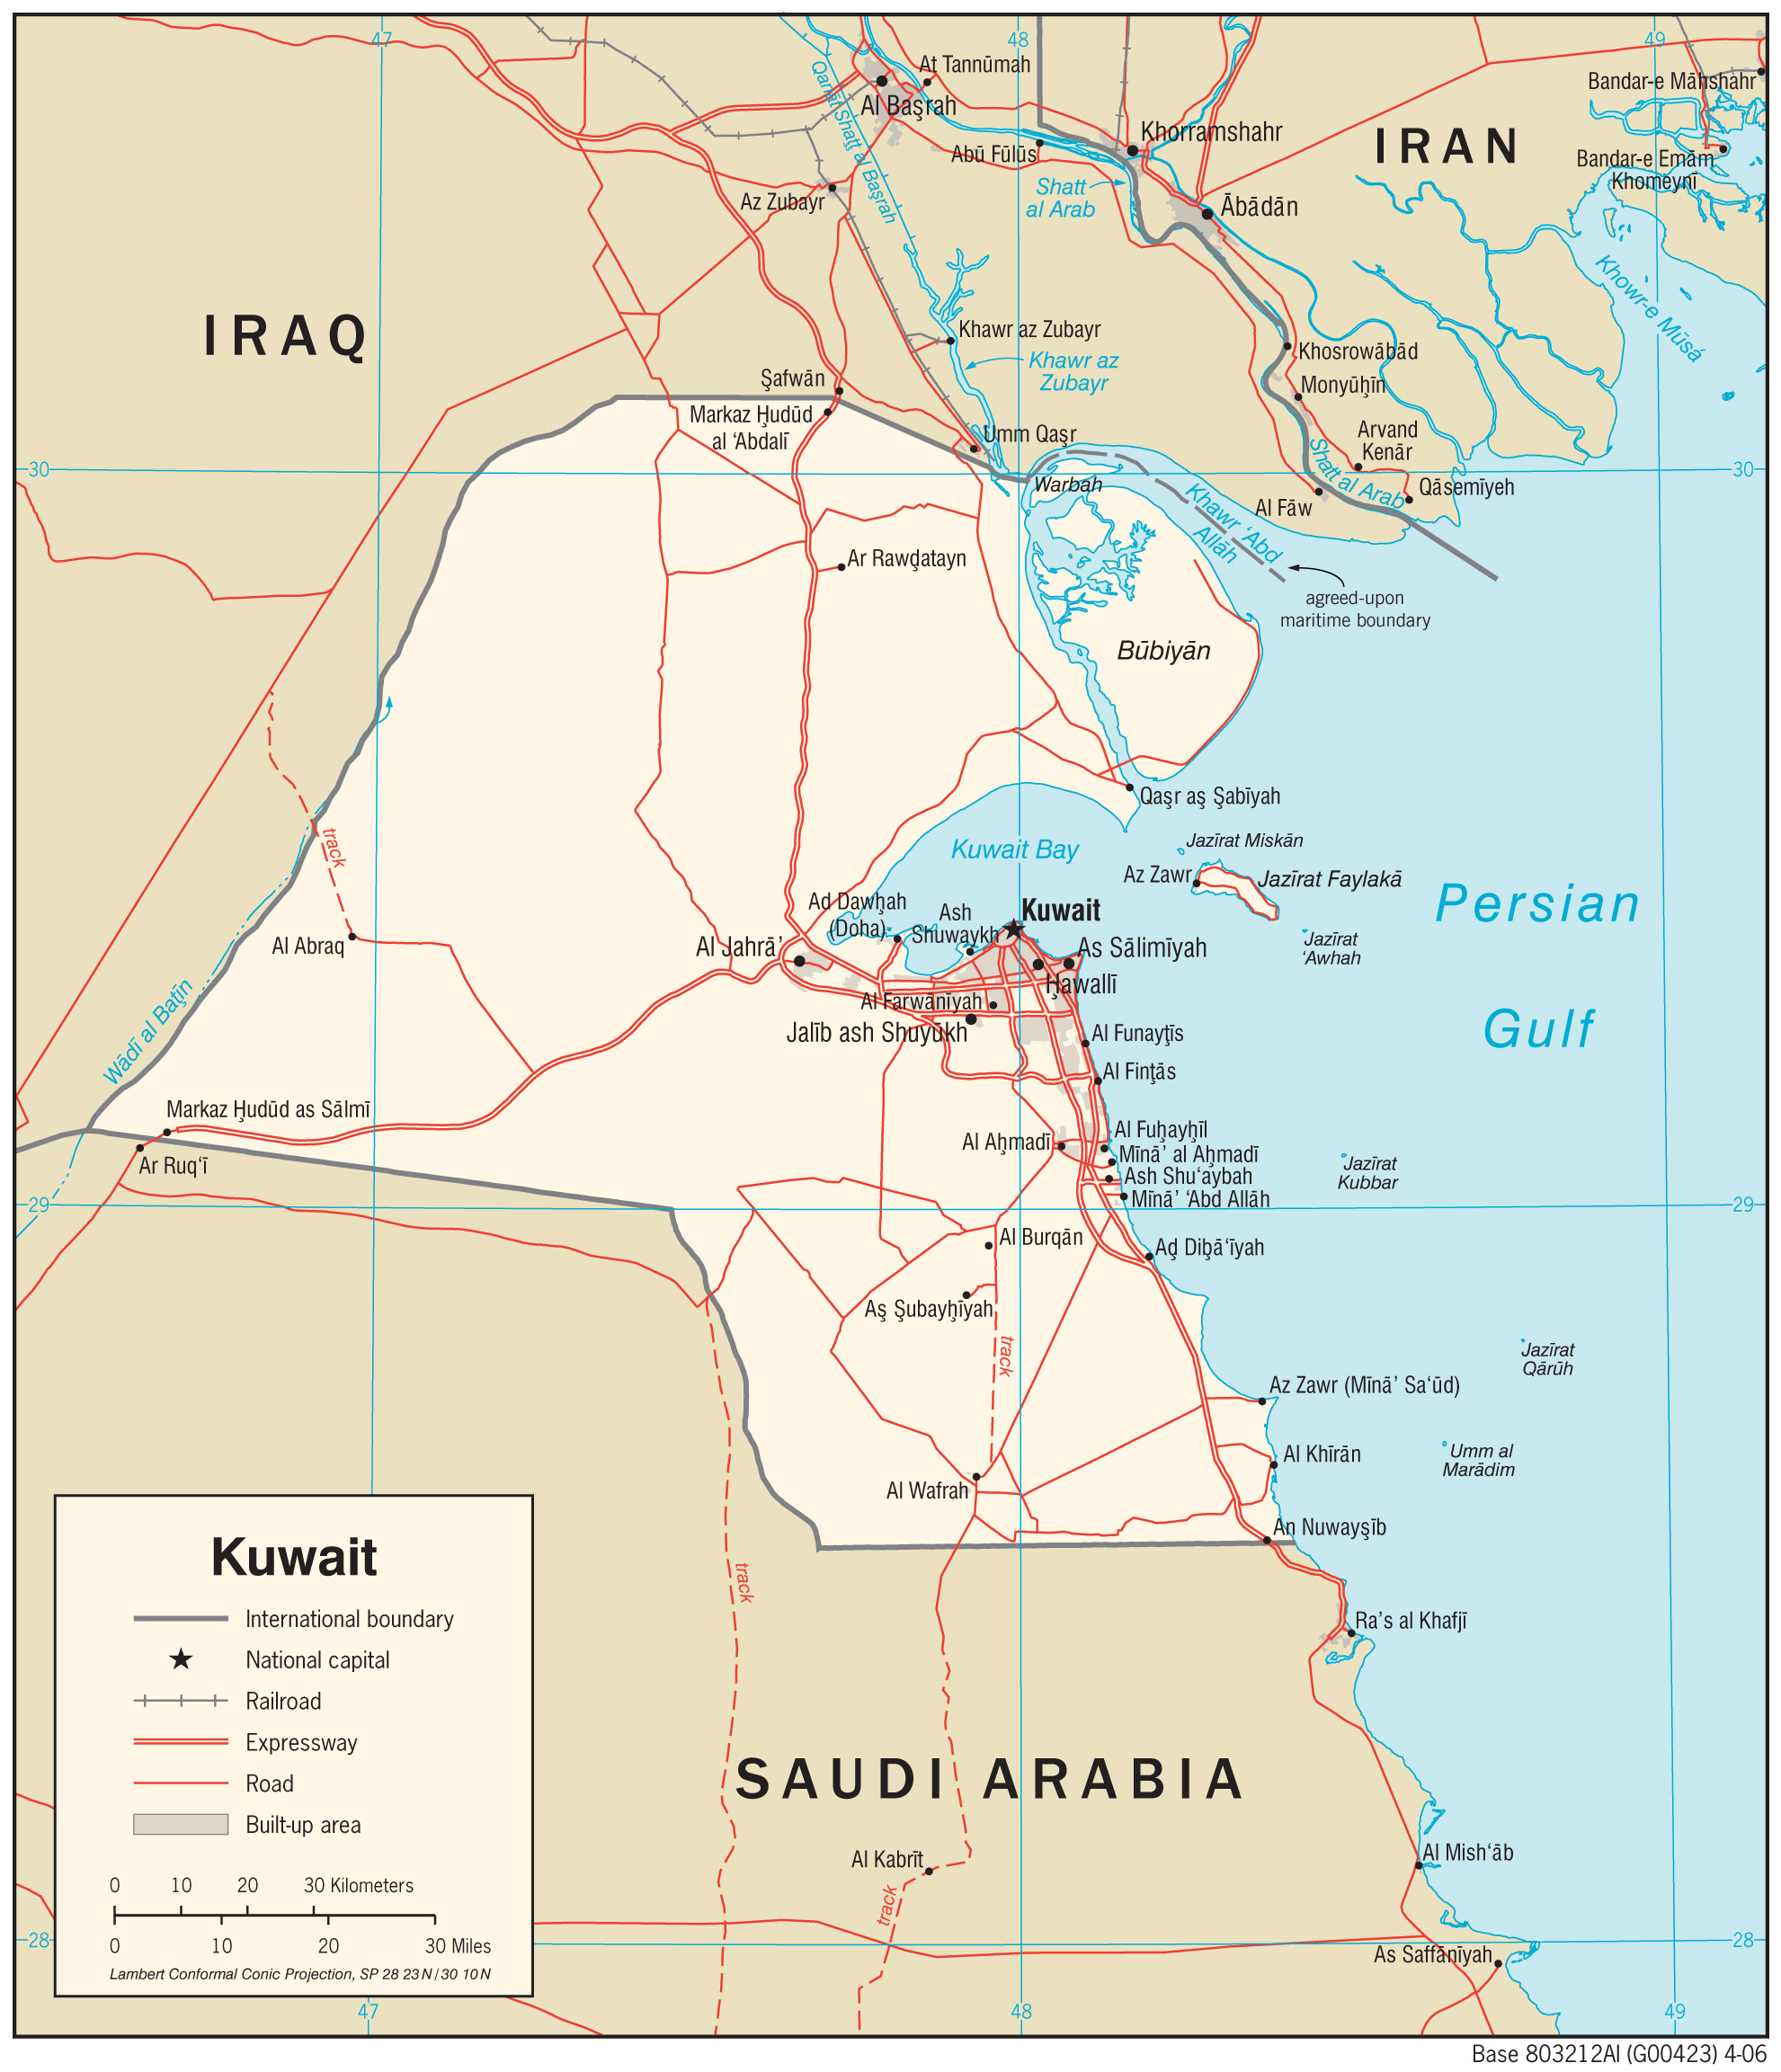 Kuwait Maps - Perry-Castañeda Map Collection - UT Liry Online on euphrates river on a map, iraq on a map, yemen on a map, turkey on a map, dubai on a map, cyprus on a map, israel on a map, jordan on a map, karachi on a map, lesotho on a map, pakistan on a map, albania on a map, tigris river on a map, bahrain on a map, lebanon on a map, tunisia on a map, dead sea on a map, brunei on a map, djibouti on a map, qatar on a map,